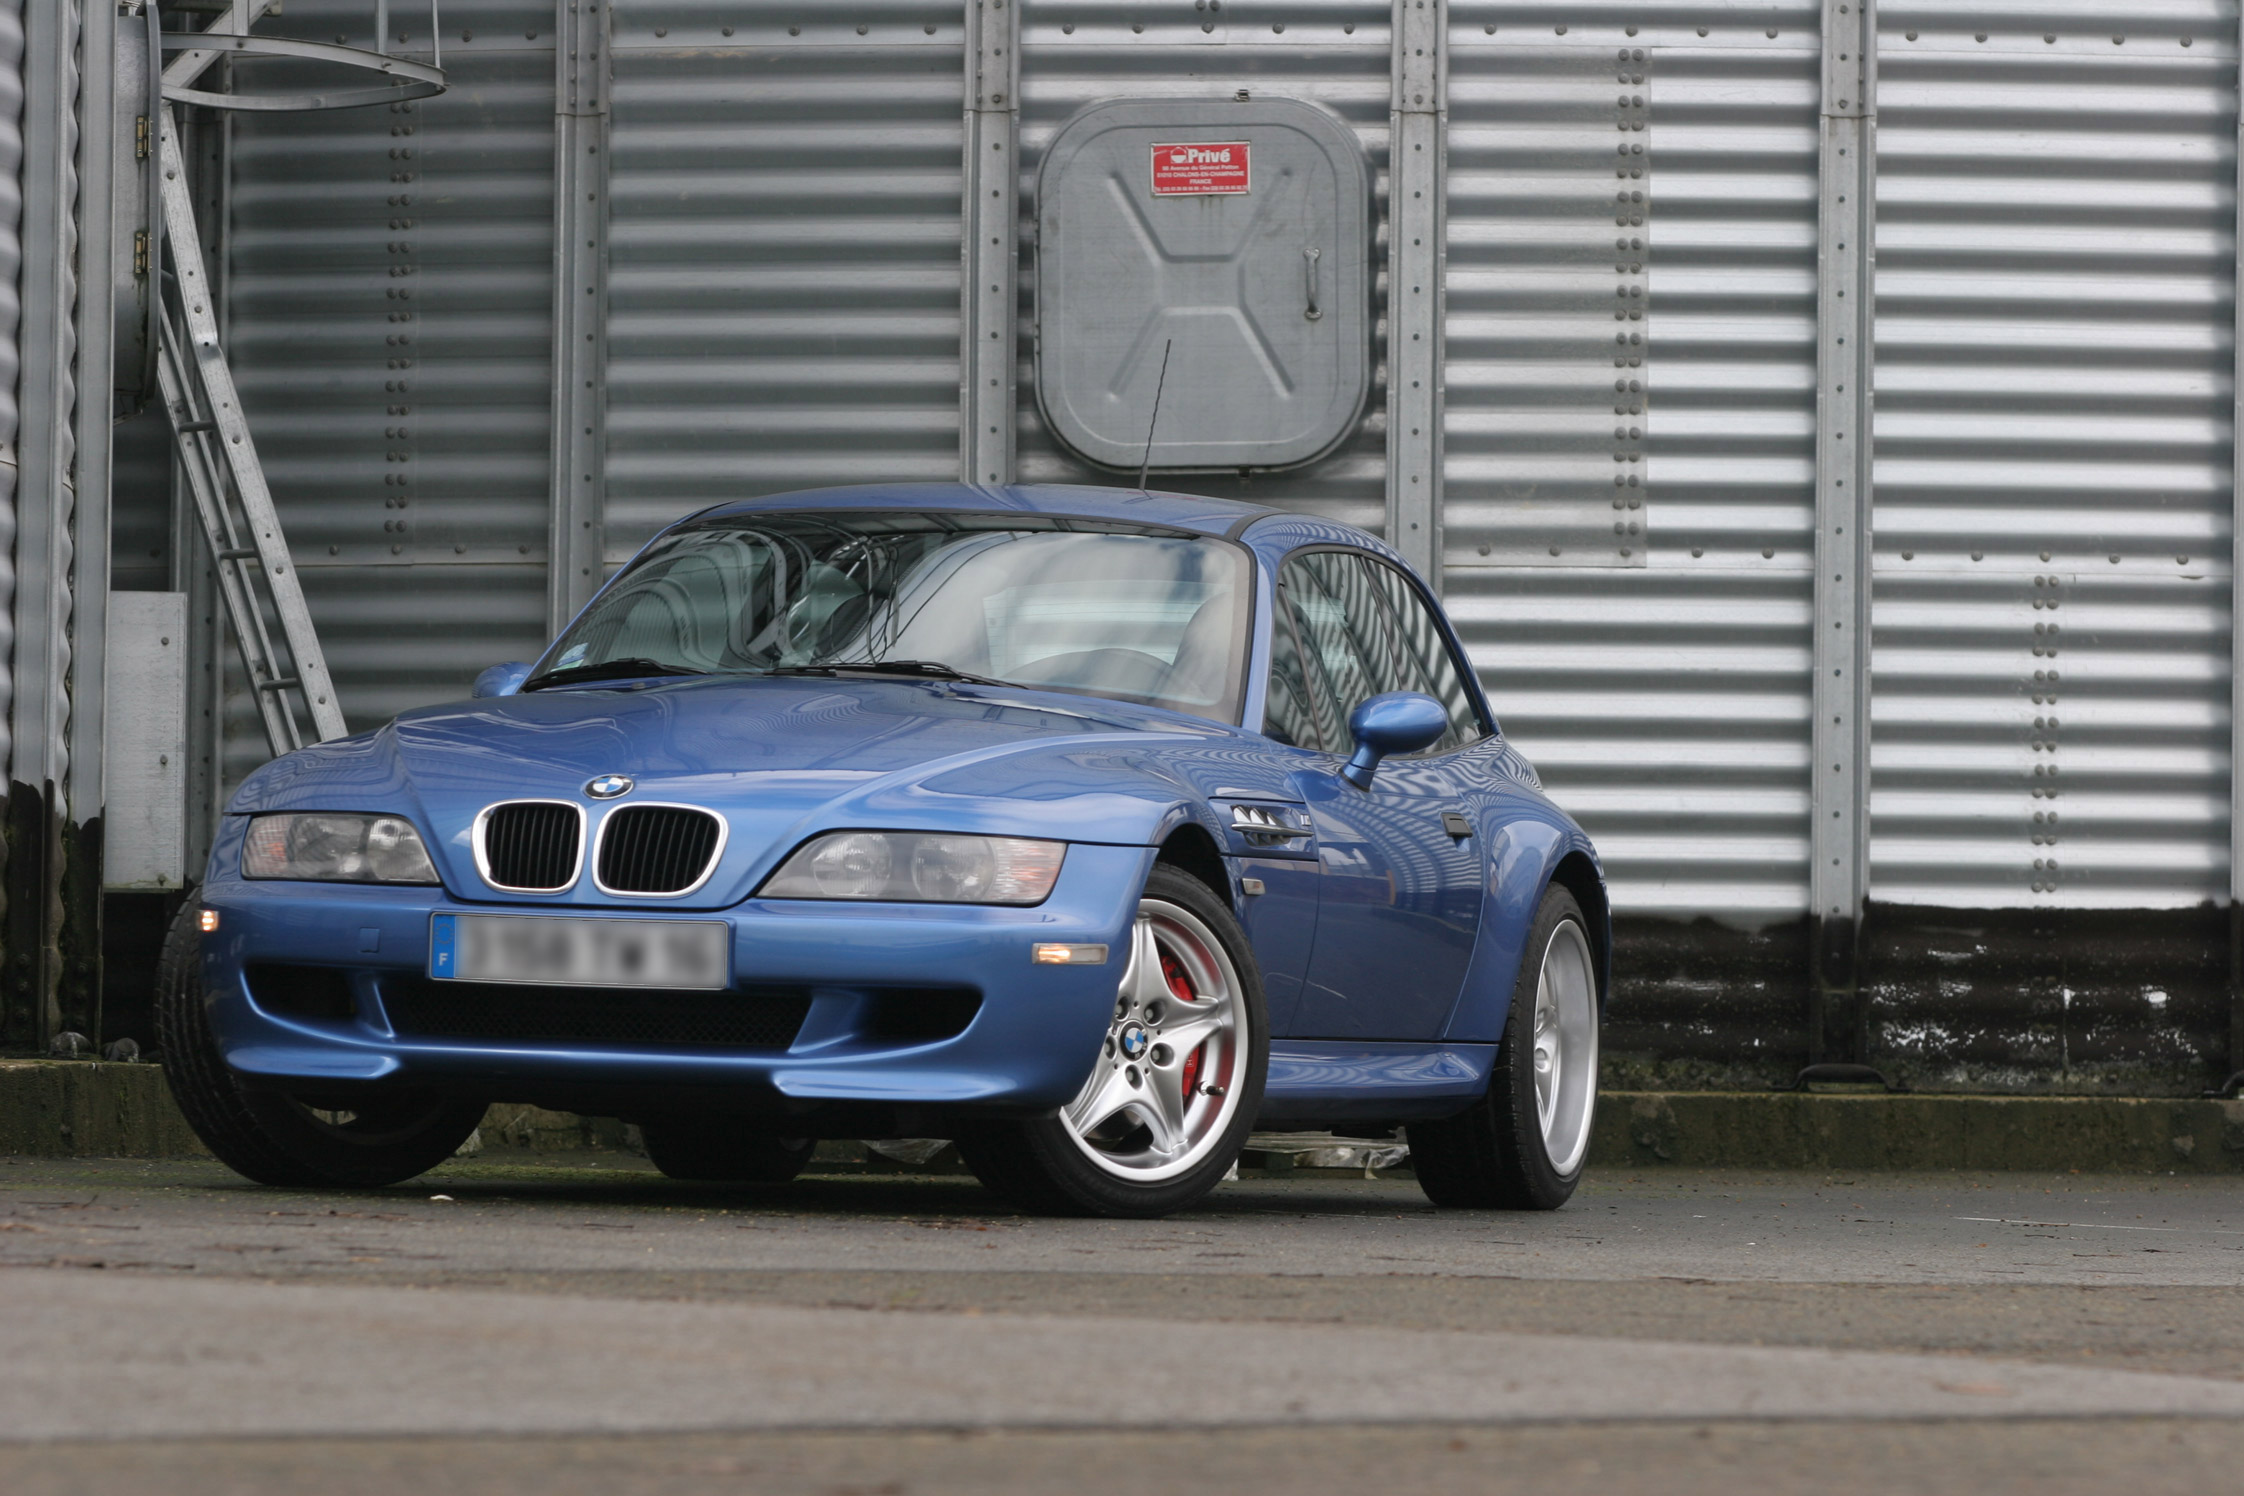 Bmw Z3 Roof Replacement Uk Bmw Z3 Roof Replacement Uk